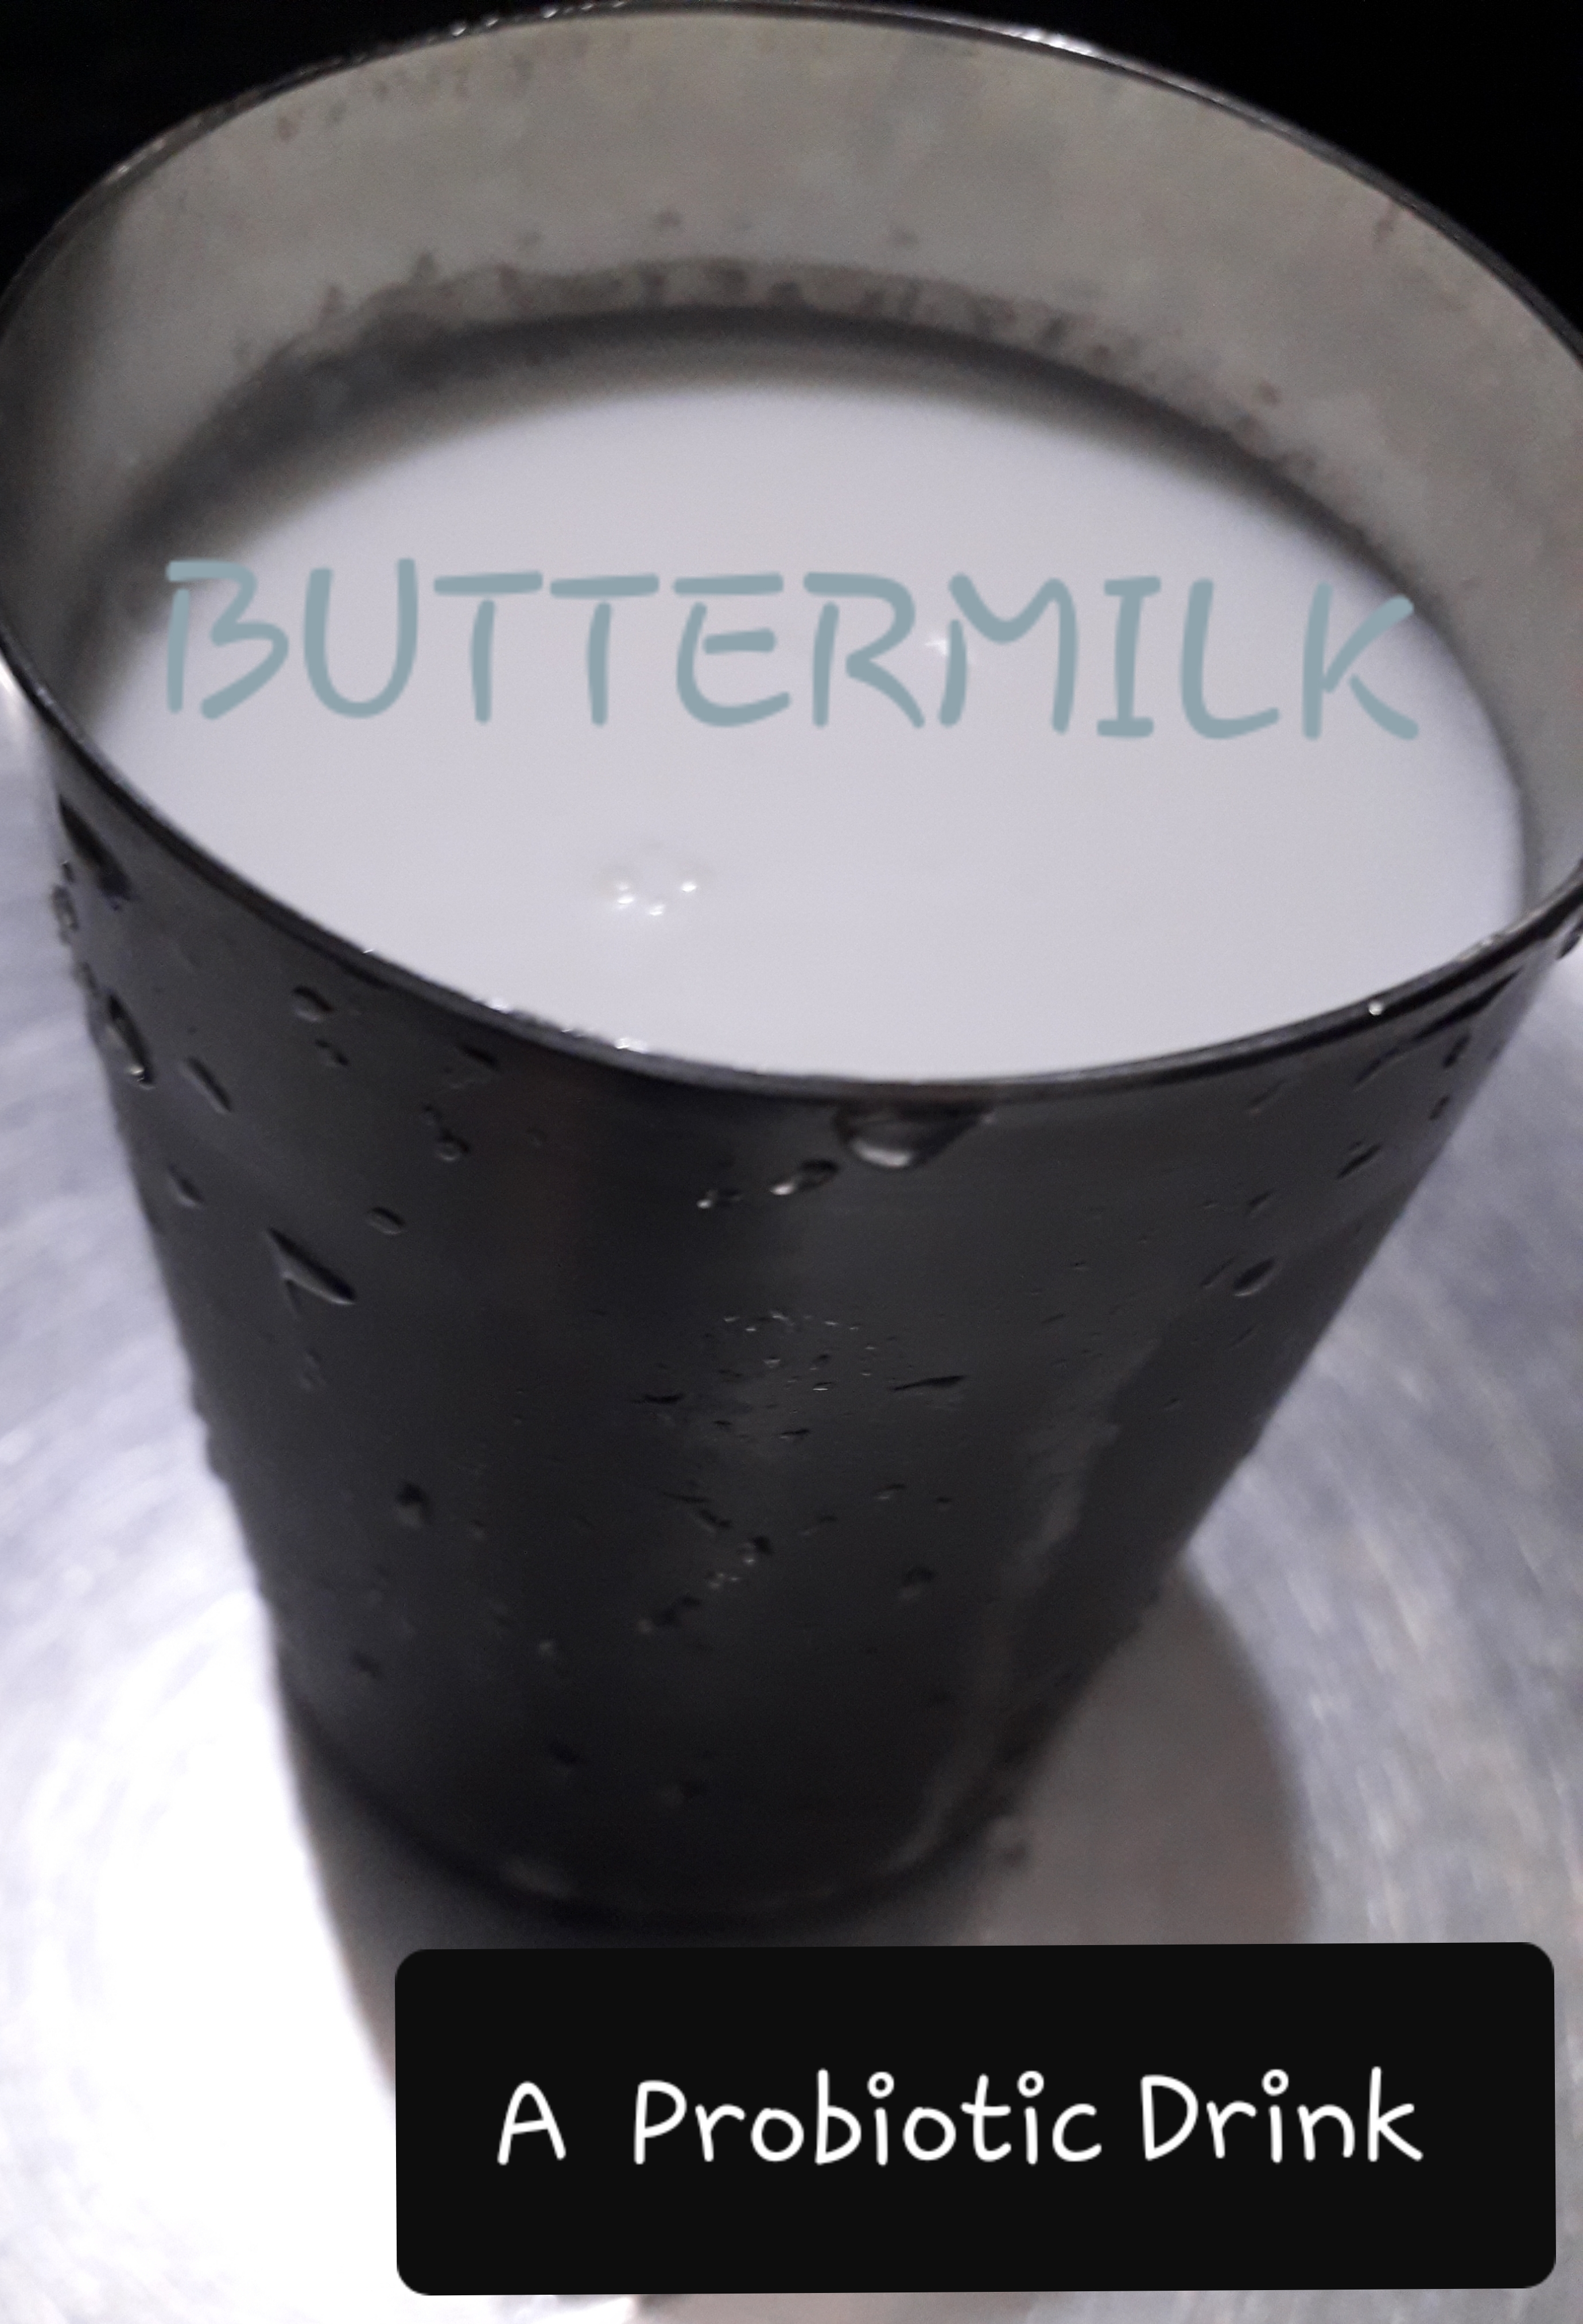 Buttermilk: FOOD PREPARED WITH THE USE OF BUTTERMILK in MASALAHEALTH.COM